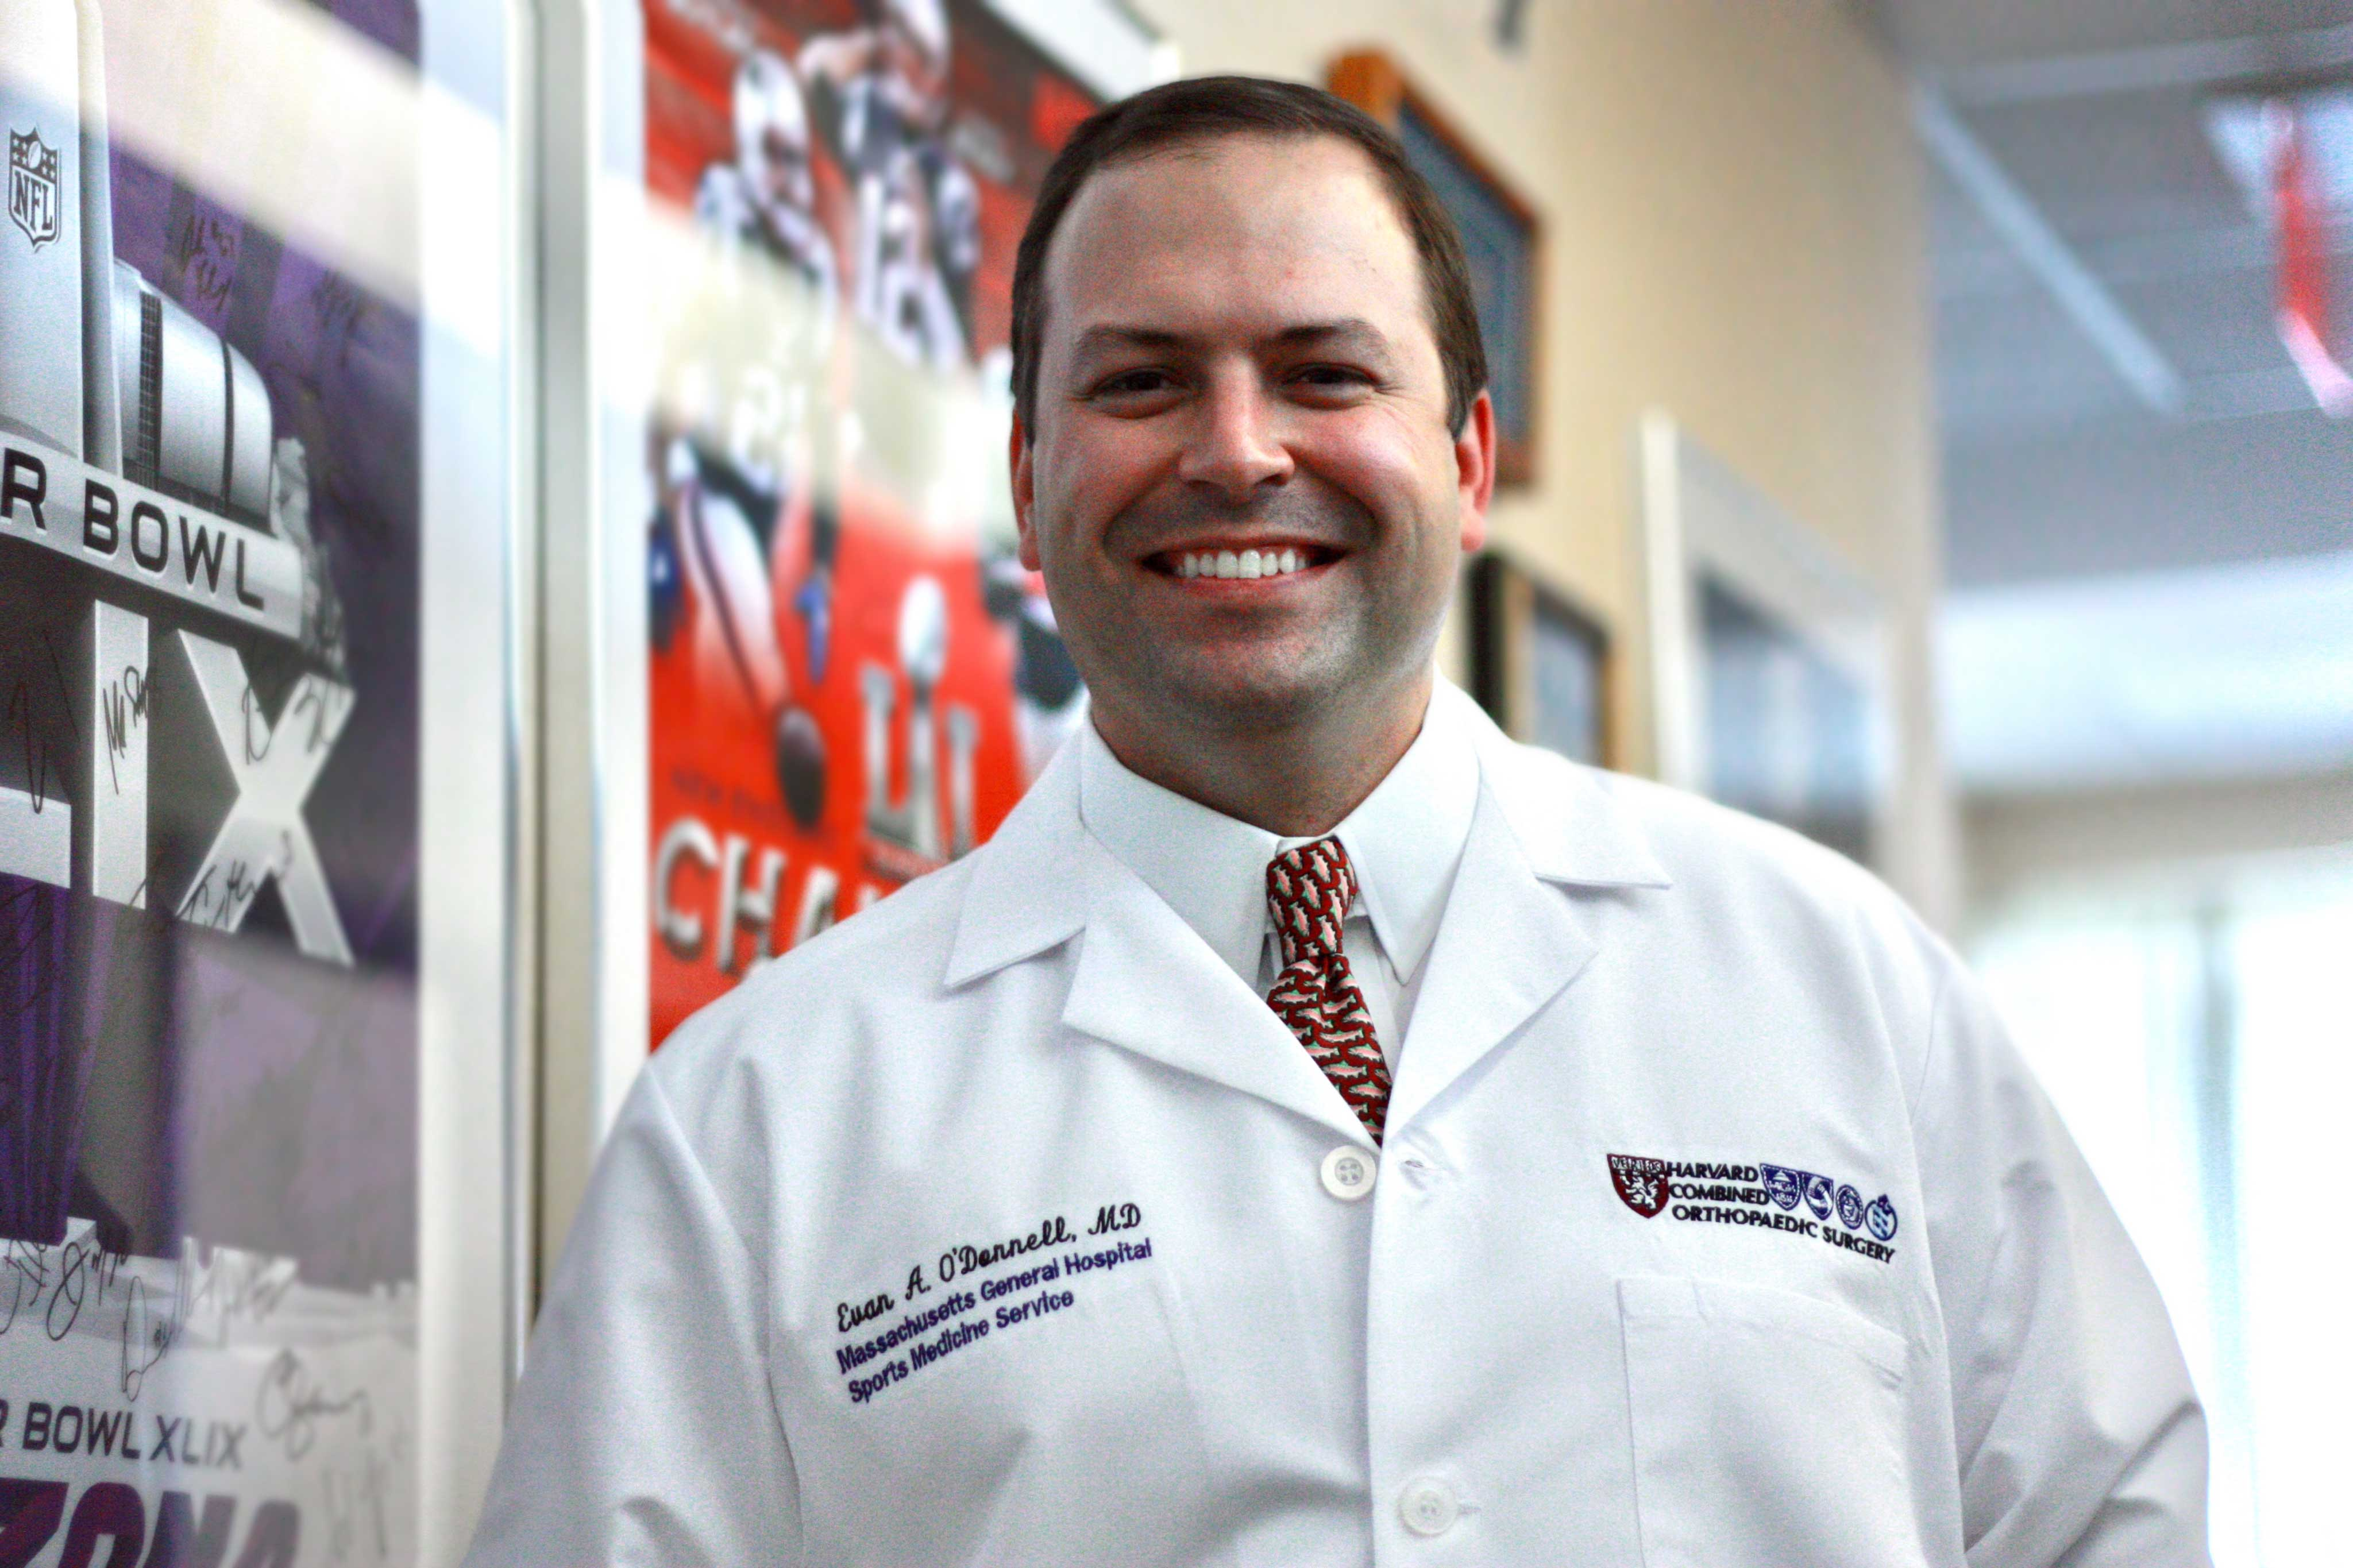 Dr. Evan A. O'Donnell, MD at Harvard Combined Orthopaedic Surgery